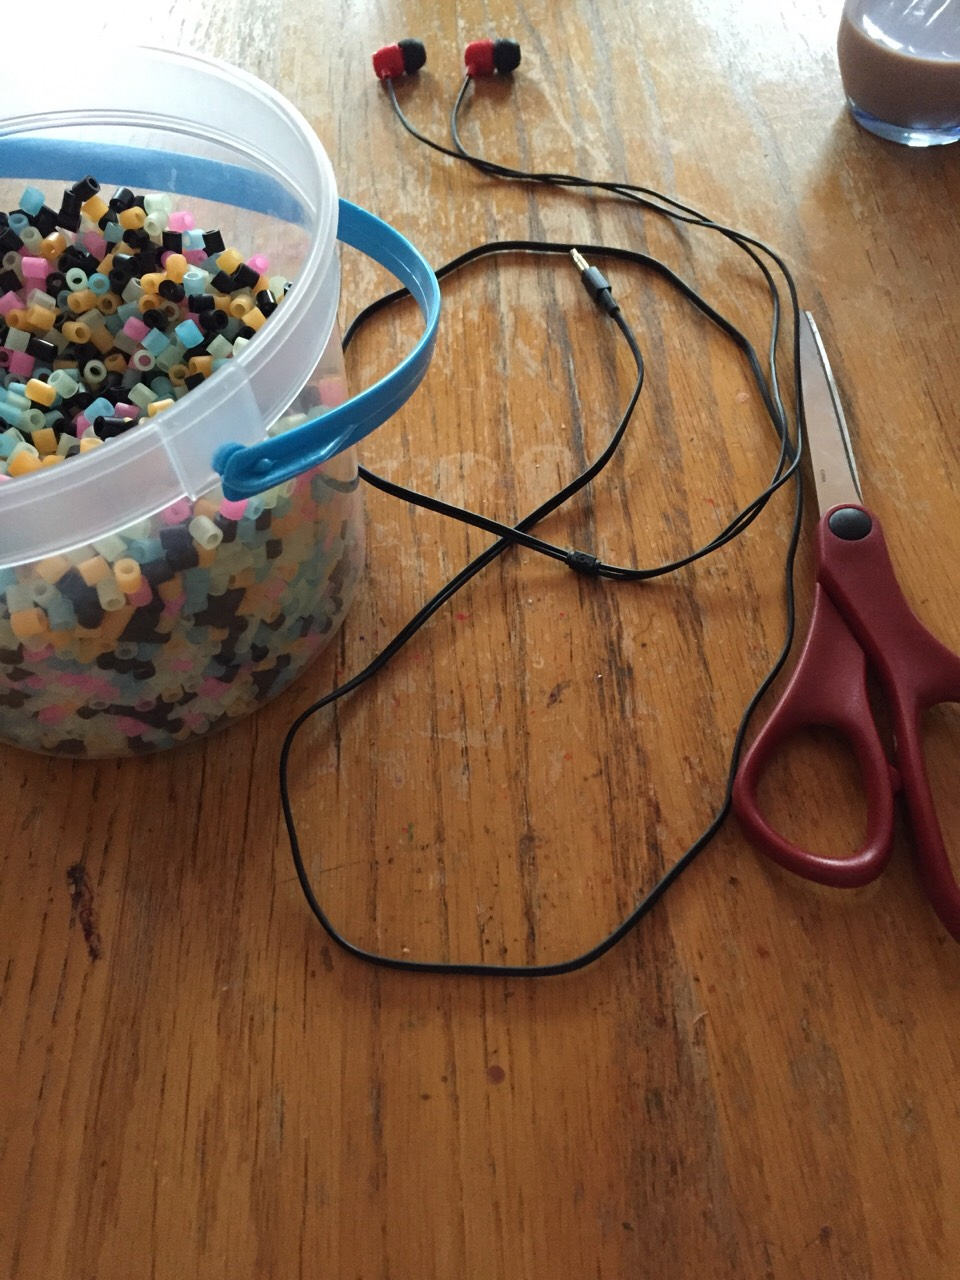 What you'll need is  Headphones Plastic beads Scissors  Time 1+ hour